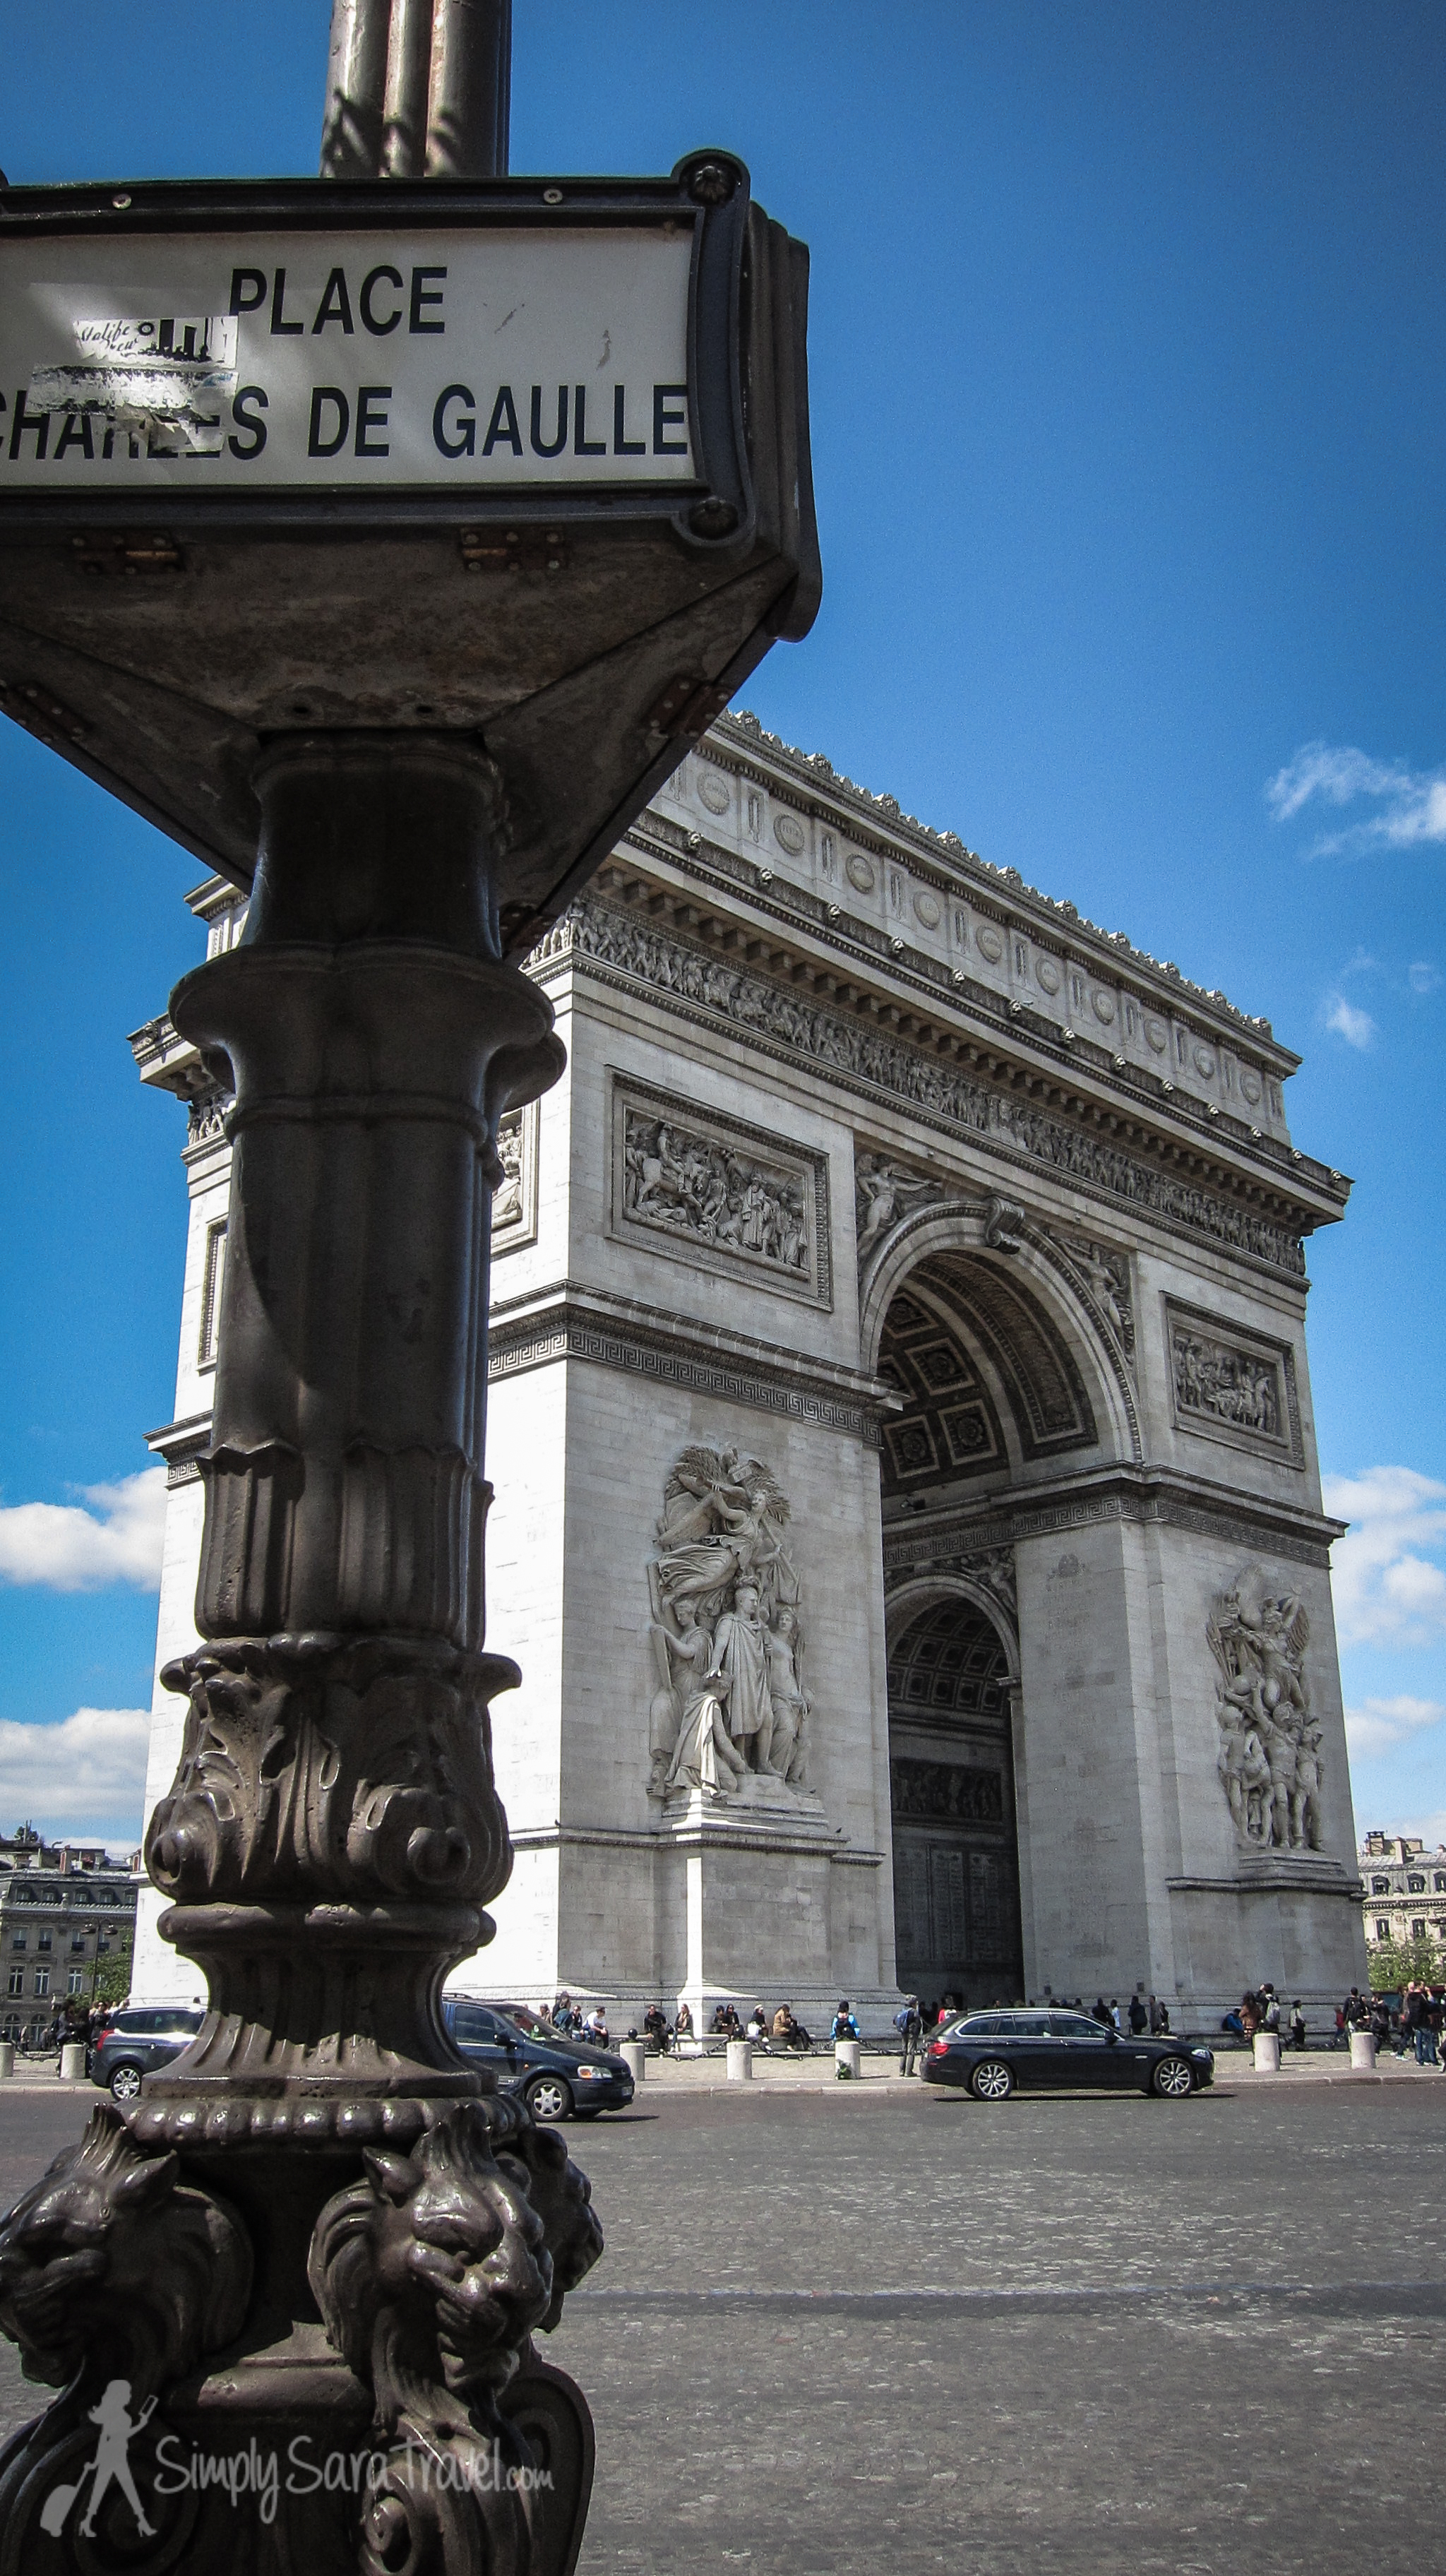 Place Charles de Gaulle and Arc de Triomphe